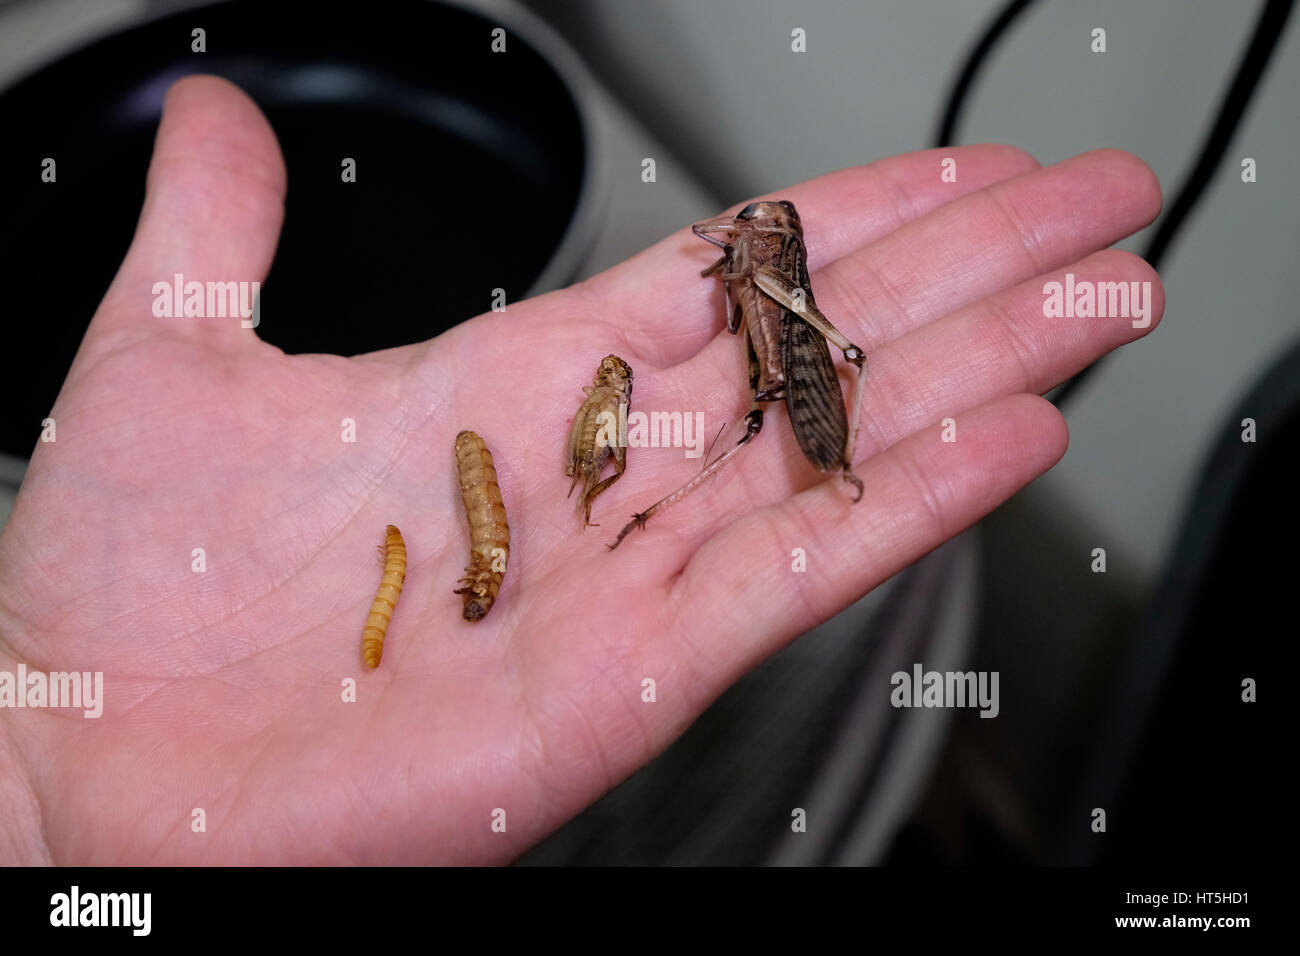 Man holds a cricket, a migratory locusts ( Locusta migratoria) and edible mealworm pupas, prepared to be cooked - Stock Image